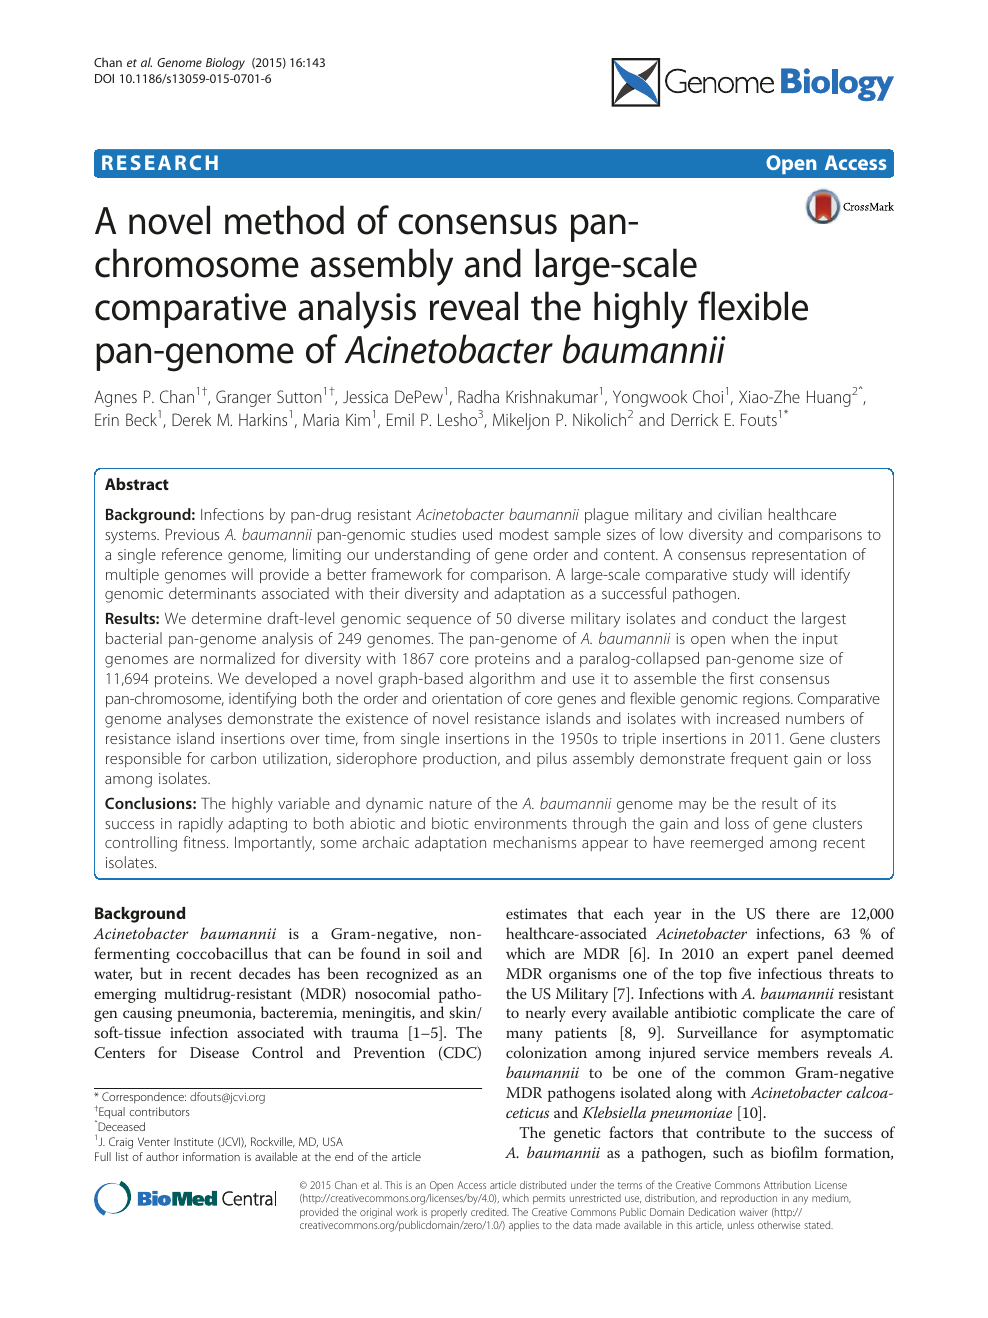 A novel method of consensus pan-chromosome assembly and large-scale